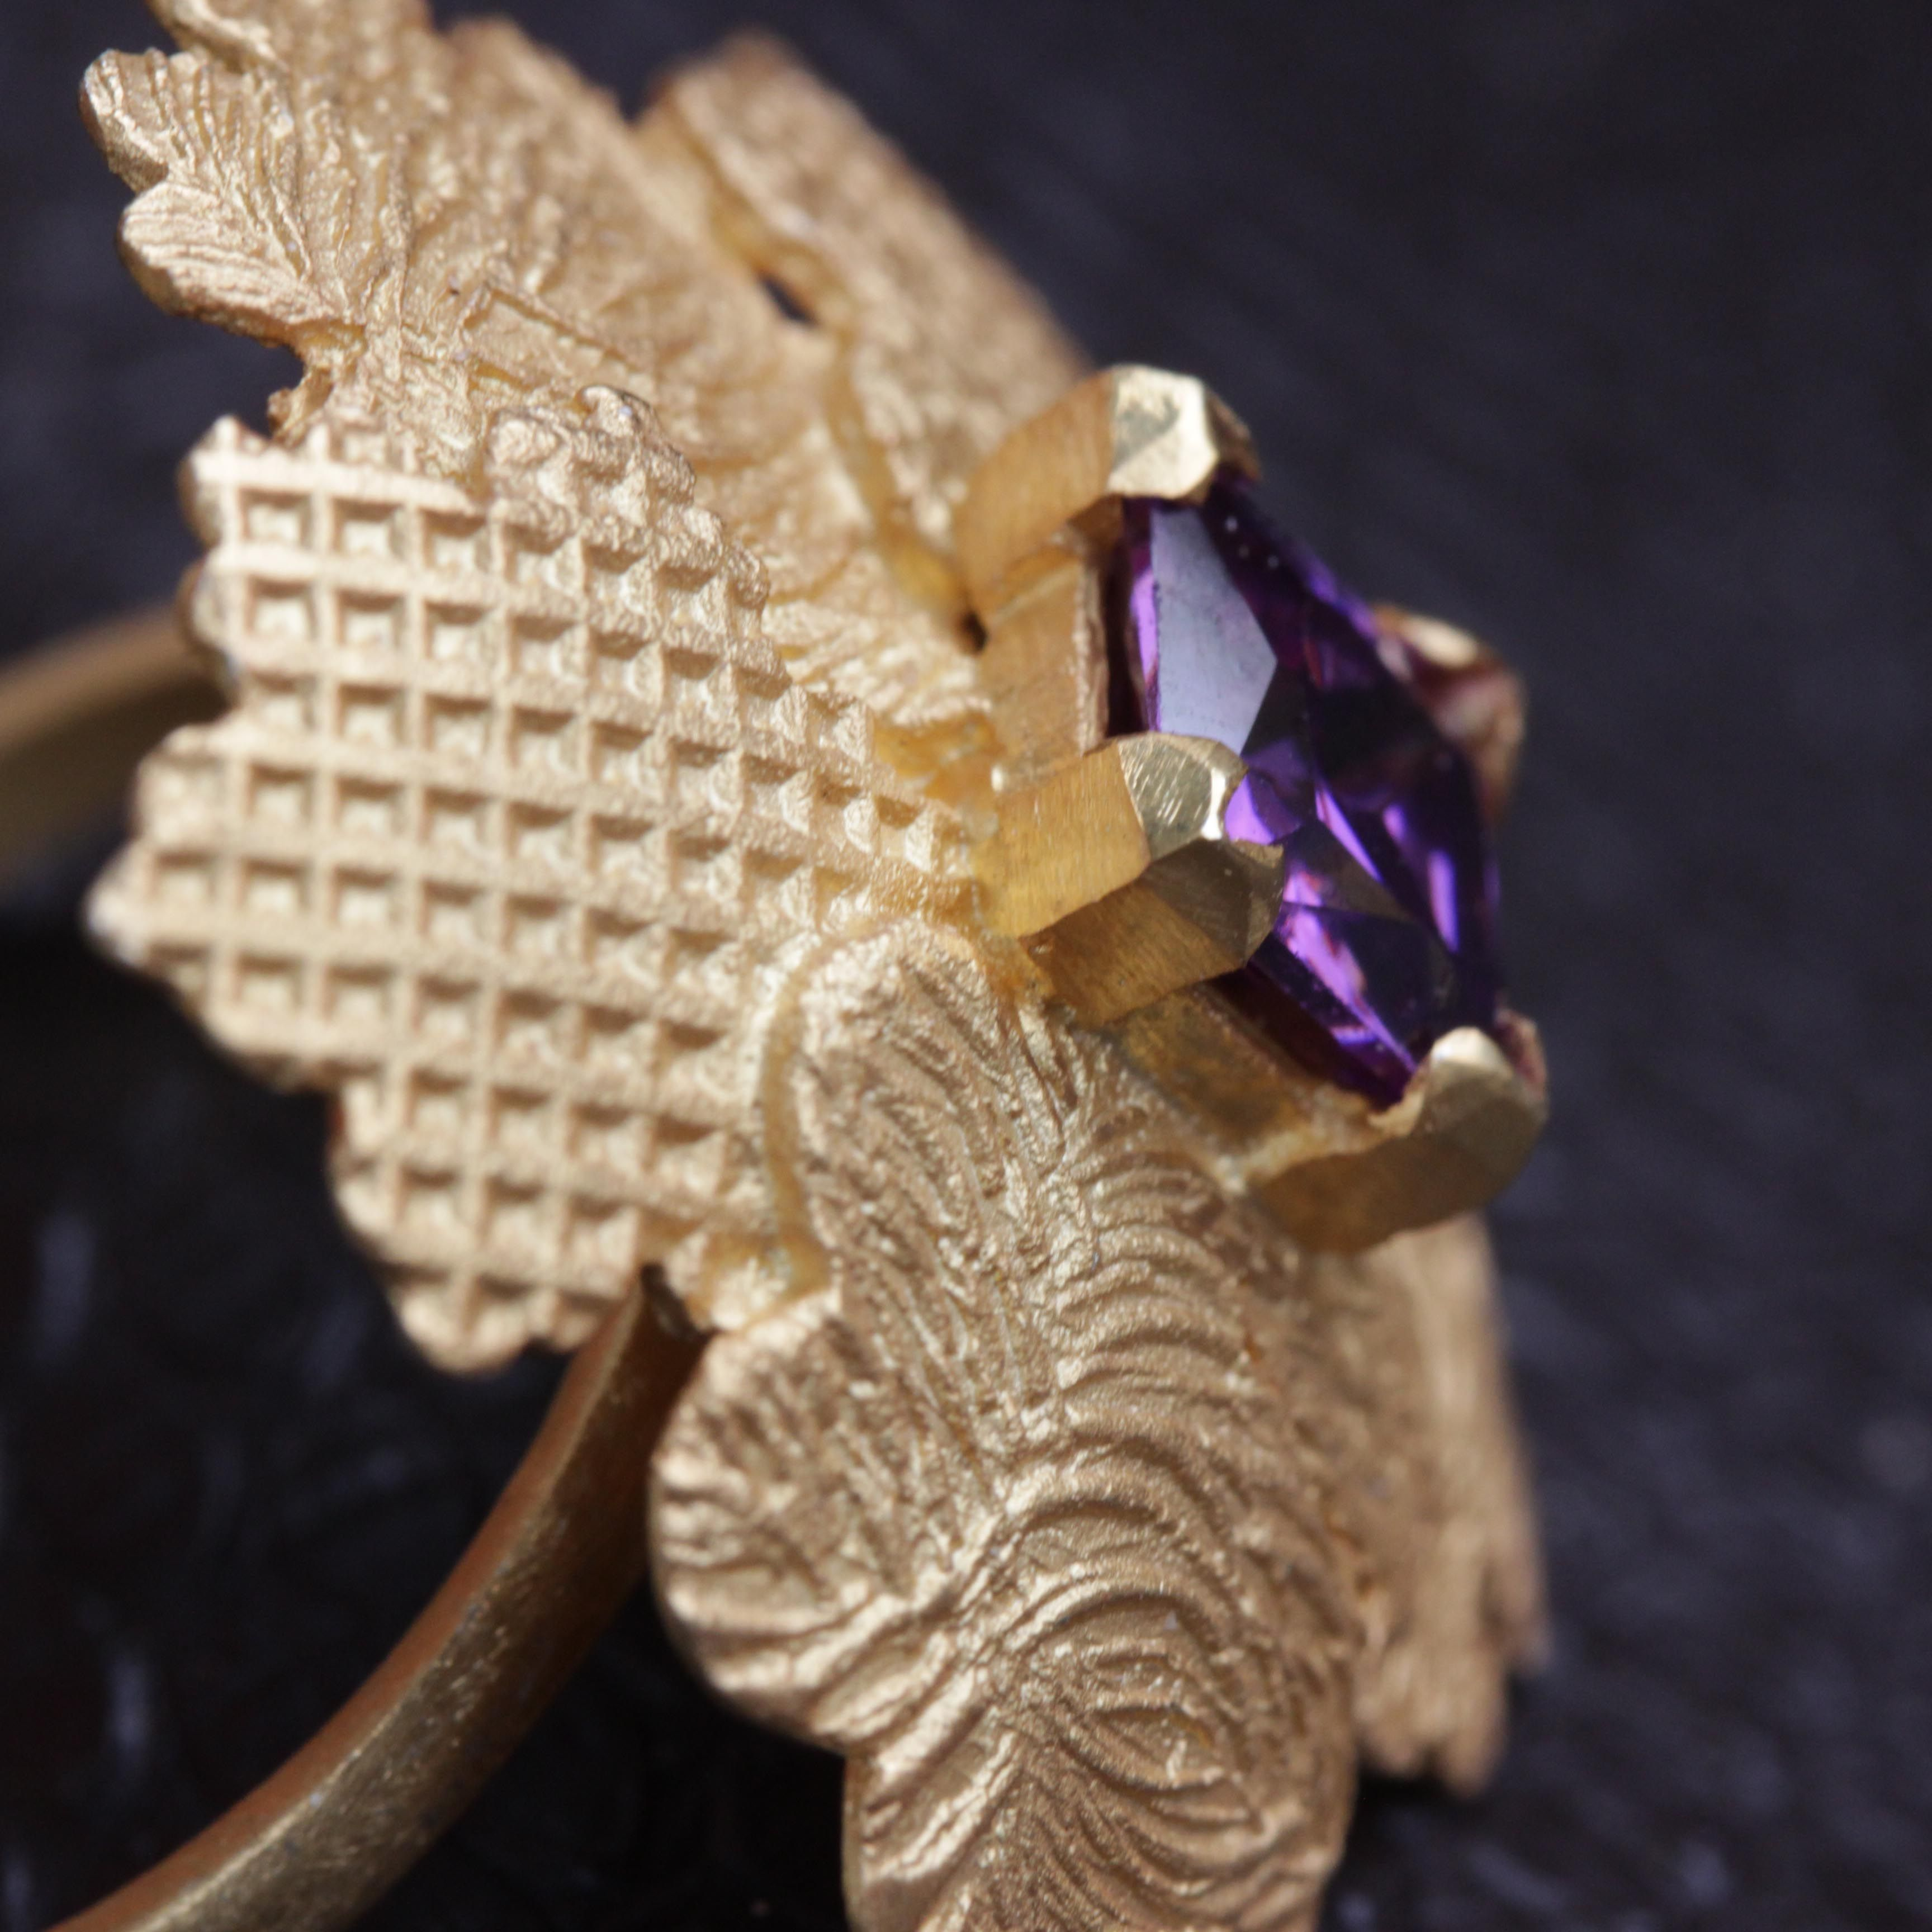 This handmade Le Foglie ring has different patterns on every leaf and a Princess Cut Synthetic Sapphire in the middle. New and available at www.carlogiuliano.com #carlogiulianojewellery #jewellery #carlogiuliano #ring #statementring #sapphire #patterns leaf